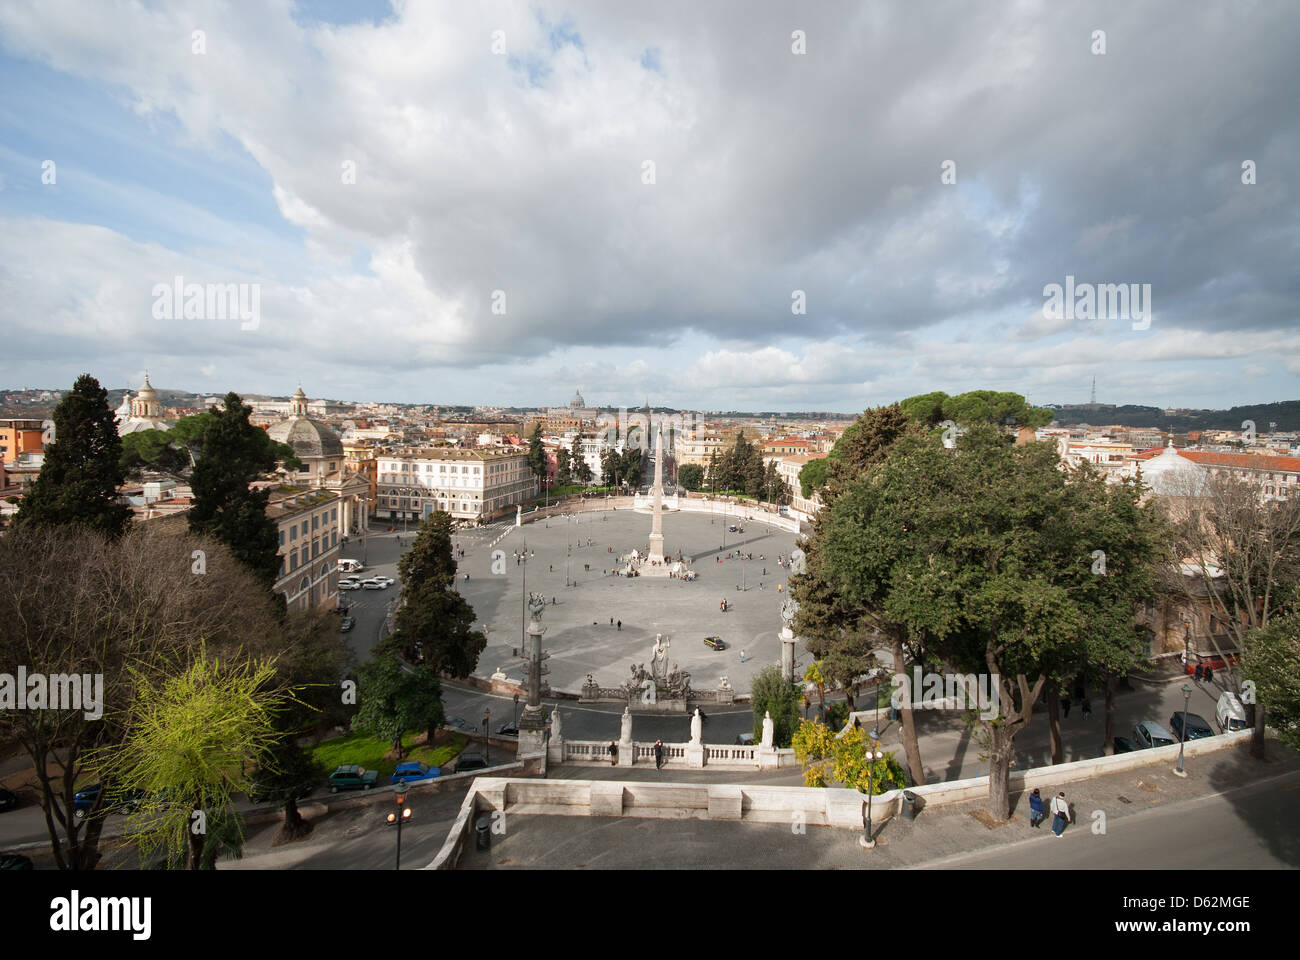 ROME, ITALY. An elevated view of Piazza del Popolo in the Tridente district of the city, as seen from Monte Pincio. - Stock Image